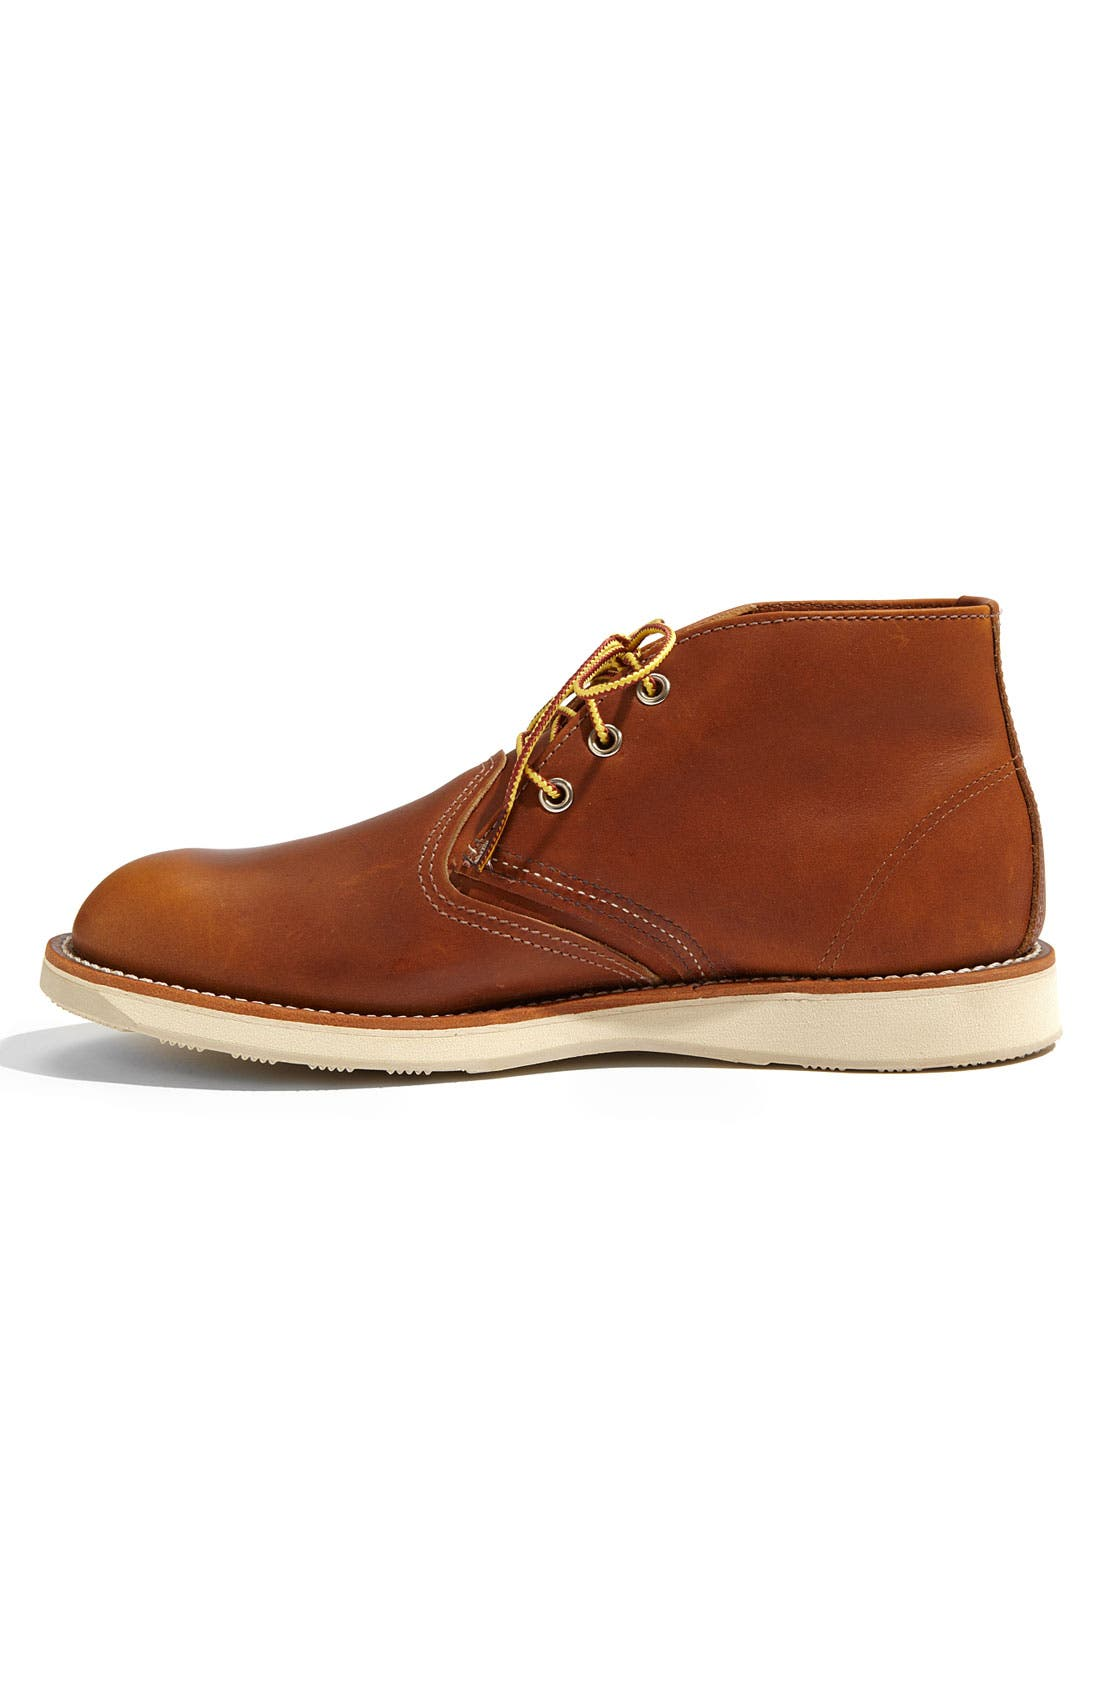 Alternate Image 2  - Red Wing 'Classic' Chukka Boot (Men)